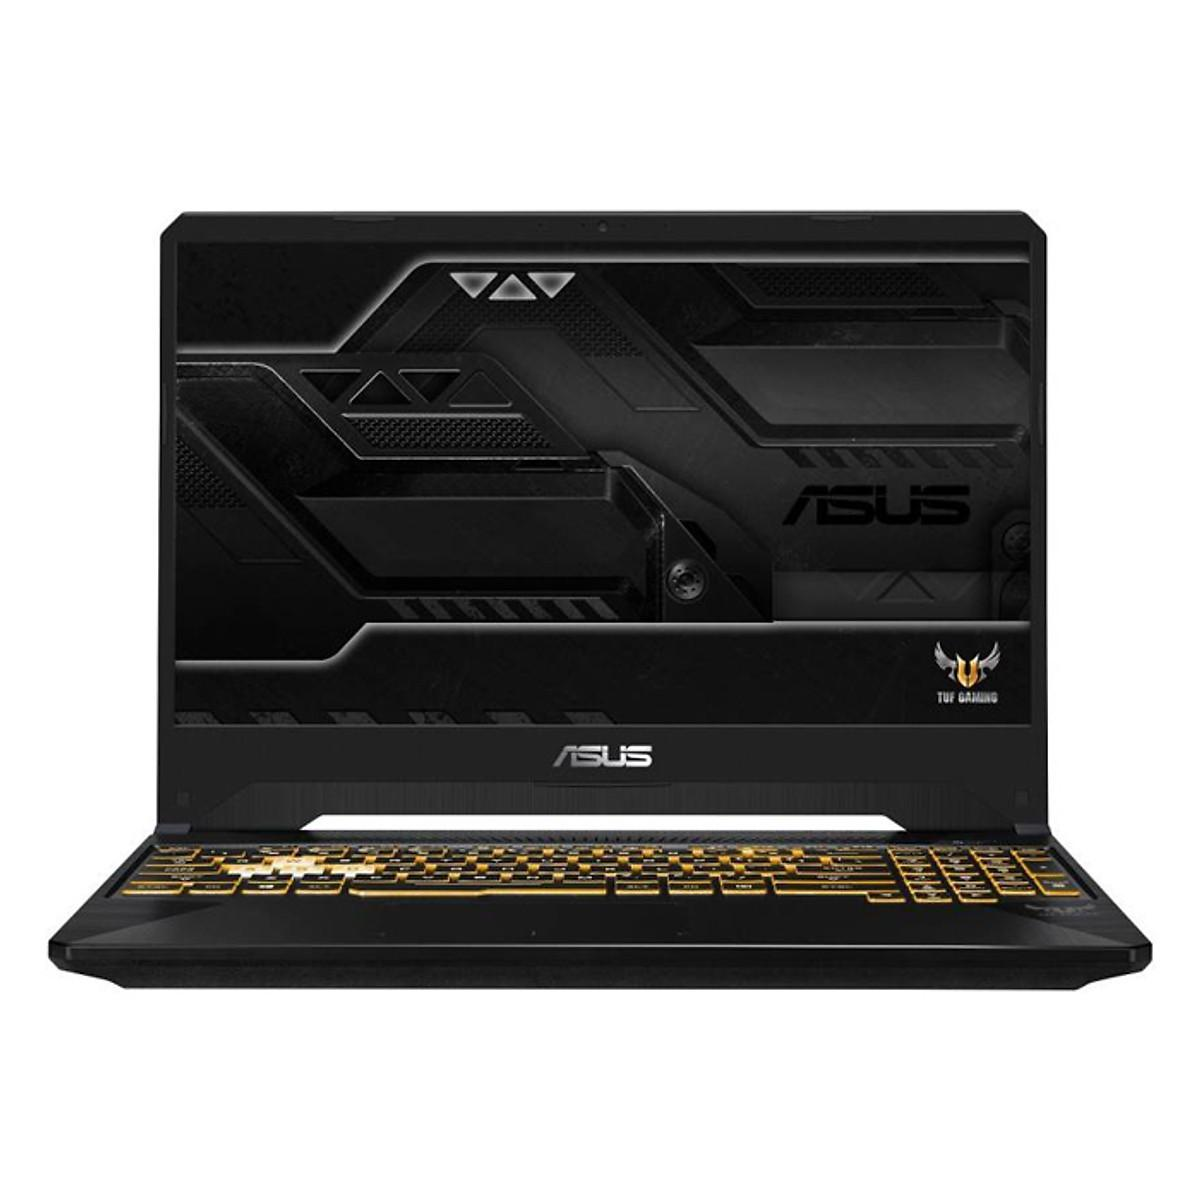 Laptop Asus TUF Gaming FX705GE-EW165T Core i7-8750H/ Win10 (17.3 FHD IPS)